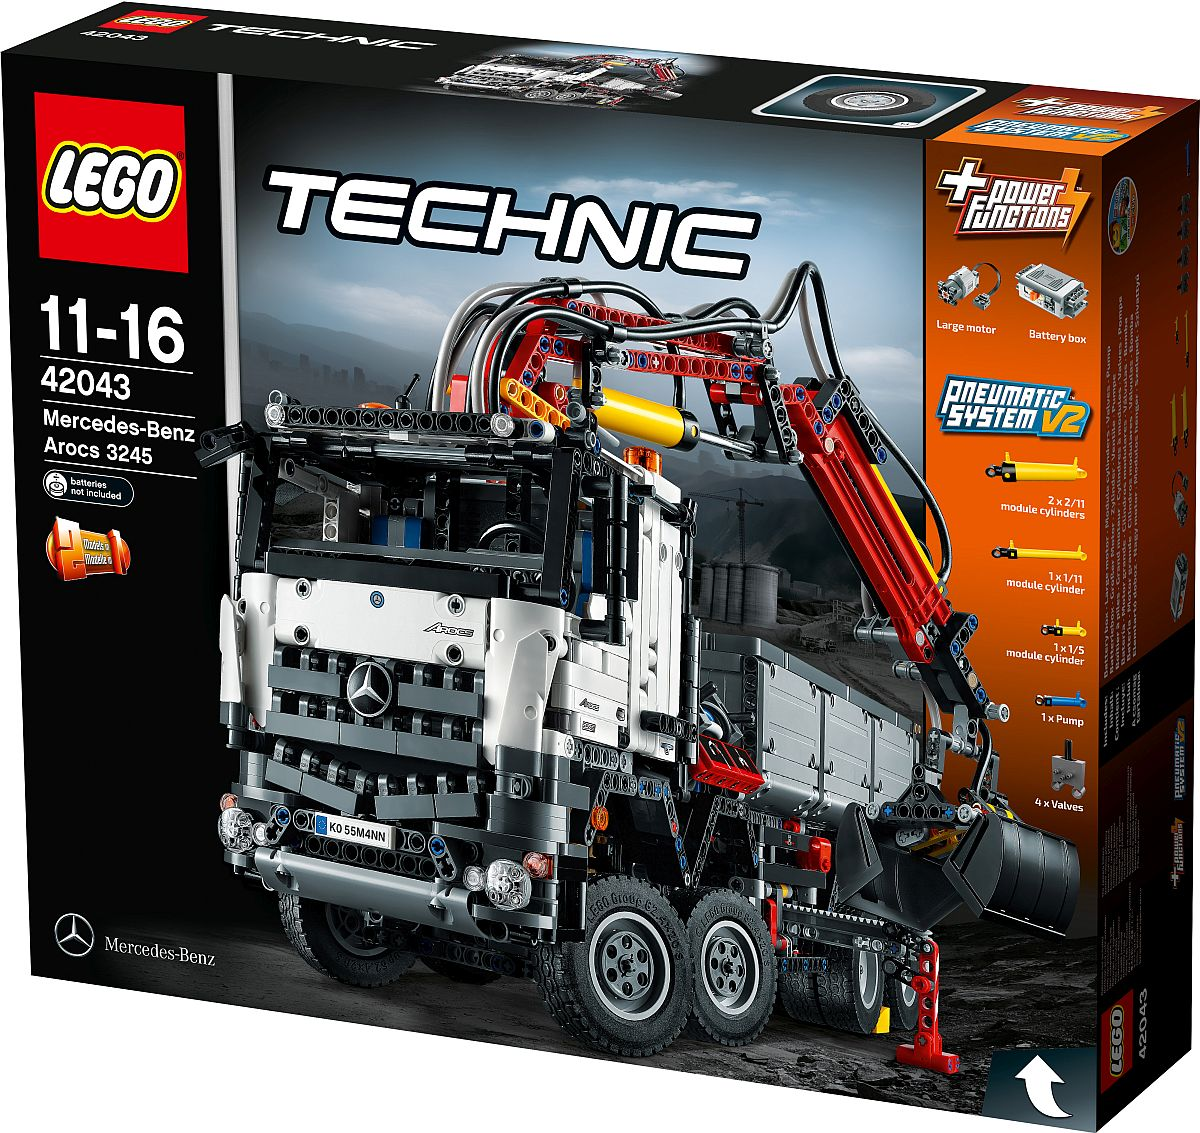 neuer truck von lego technic der mercedes benz arocs 3245. Black Bedroom Furniture Sets. Home Design Ideas